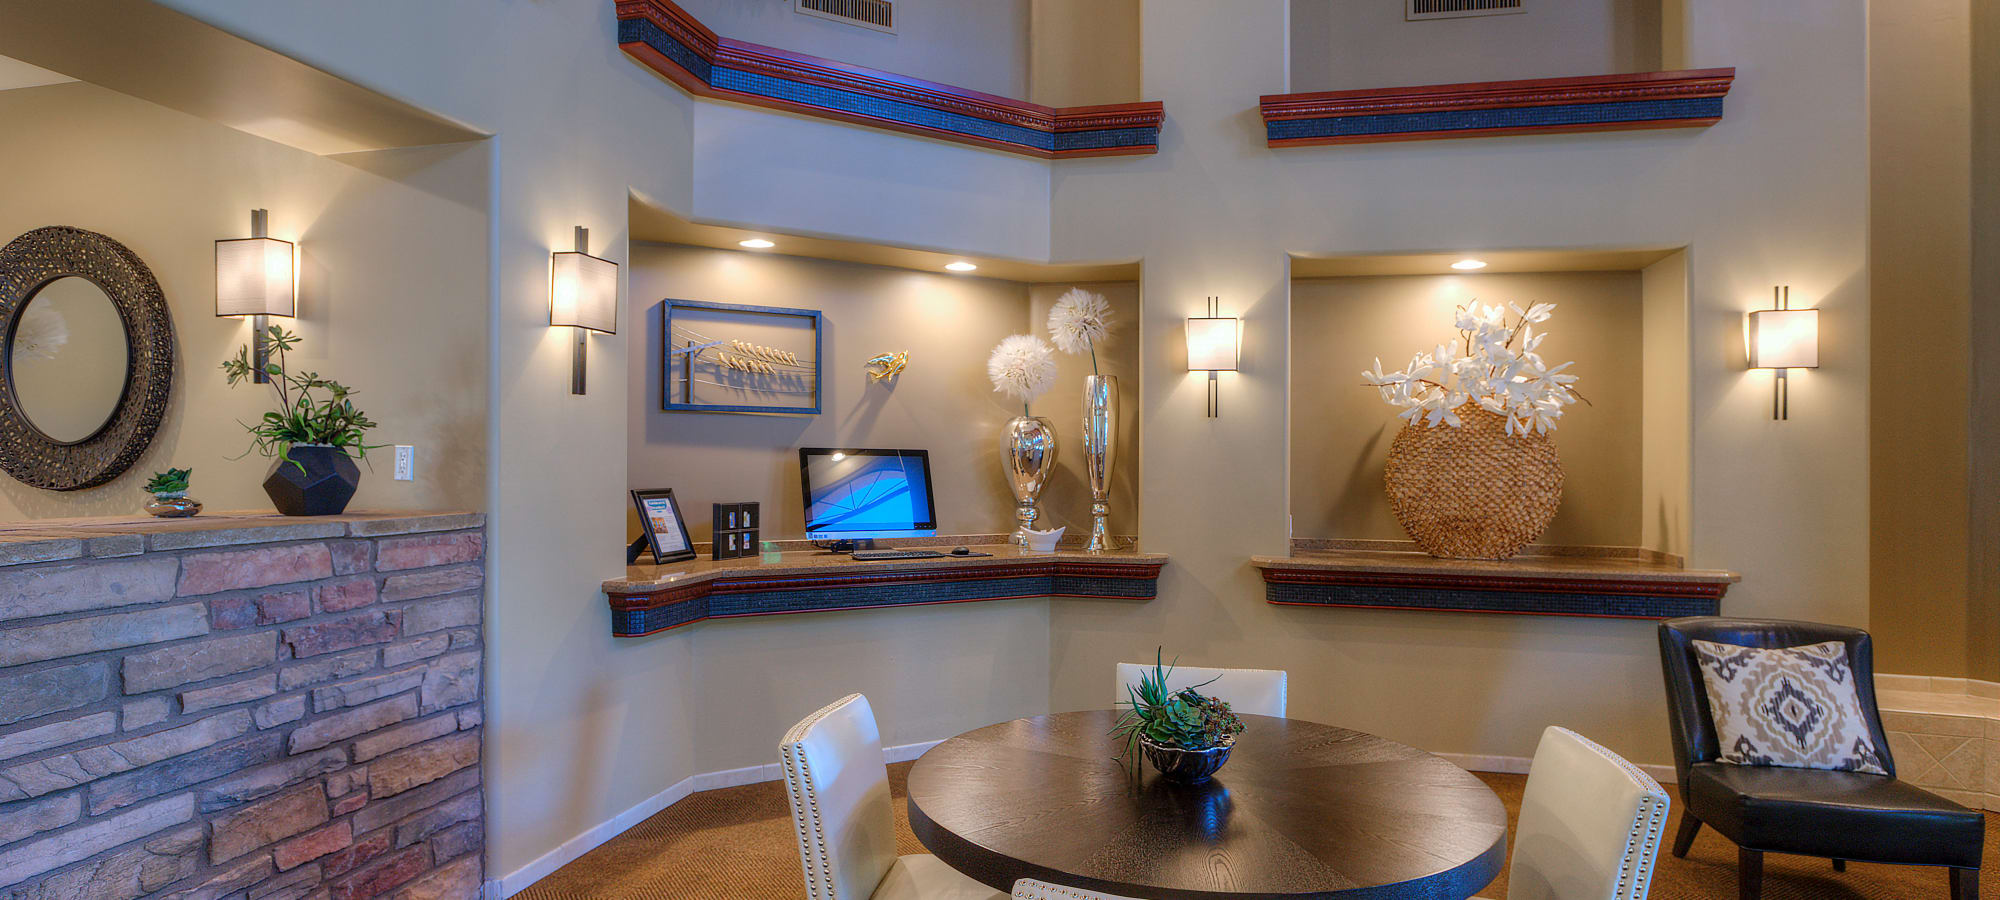 Resident clubhouse at San Cervantes in Chandler, Arizona